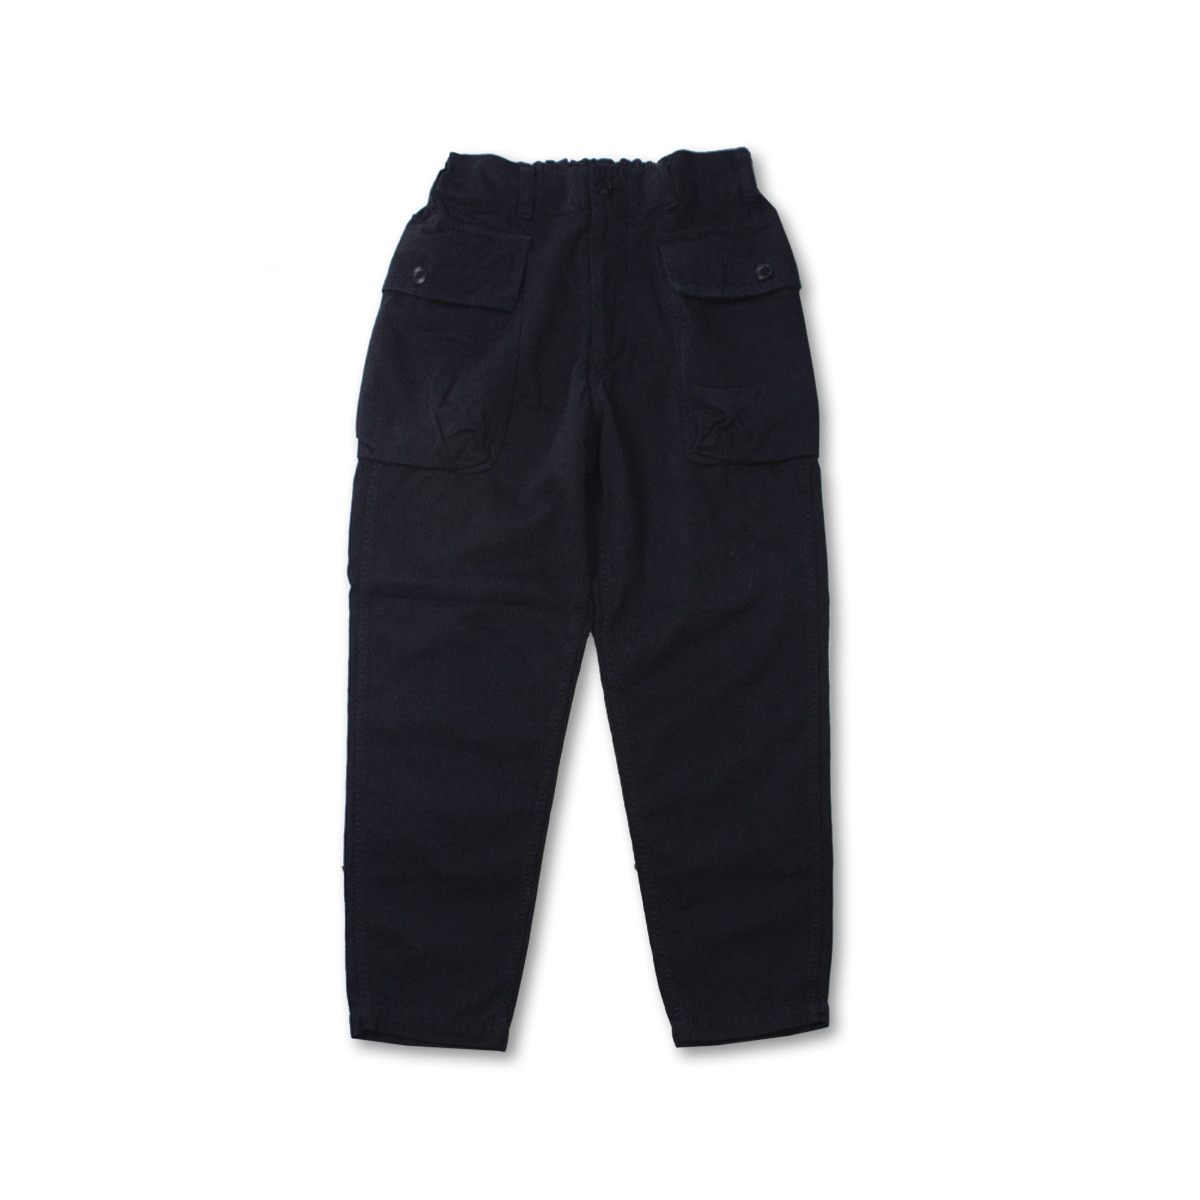 [SAGE DE CRET] MILITARY PANTS 'BLACK'